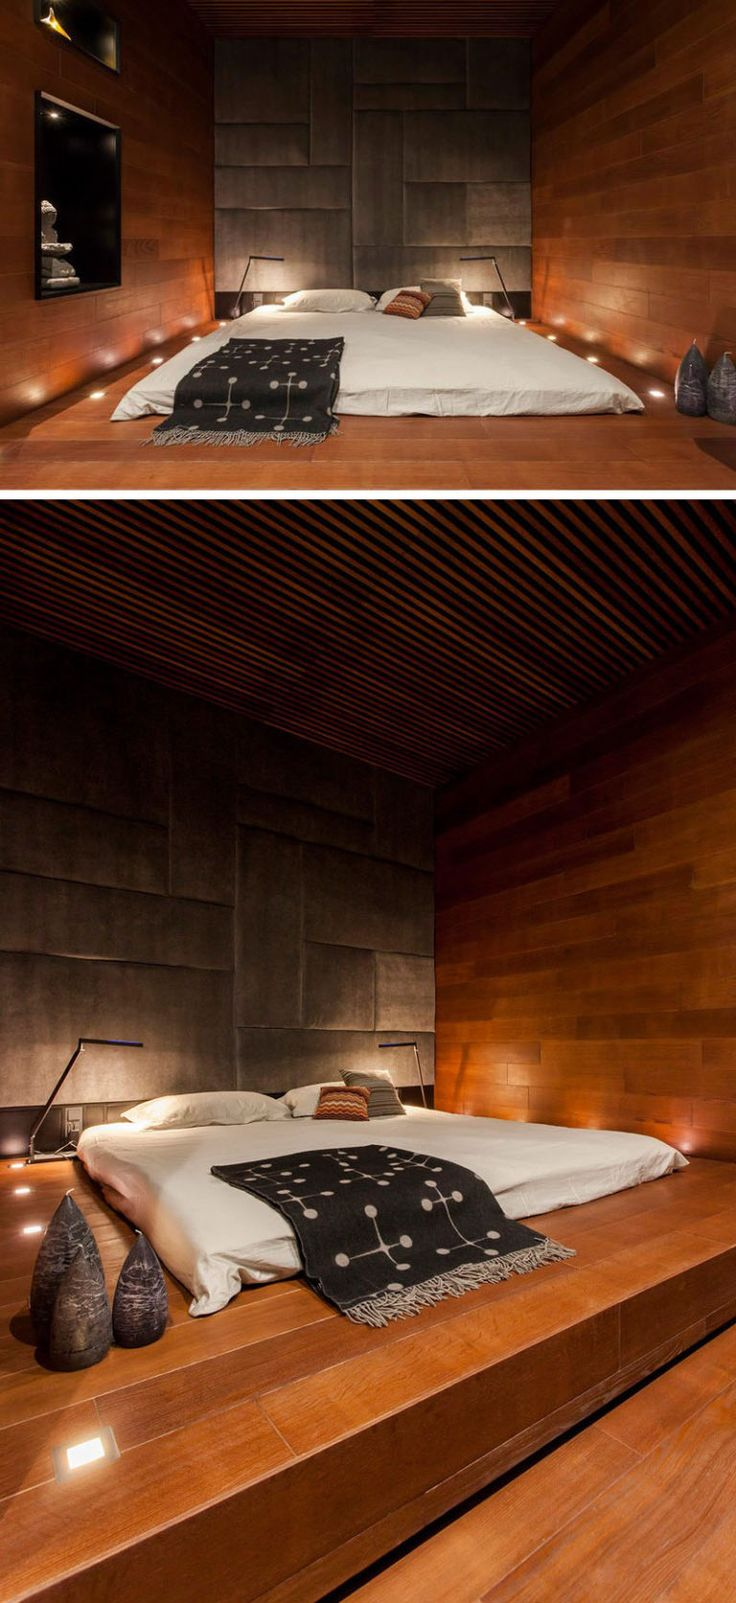 BEDROOM DESIGN IDEA - Place Your Bed On A Raised Platform // Surrounded by tiny lights built right into the wooden platform, this raised bed makes for a relaxing, sleepy oasis.